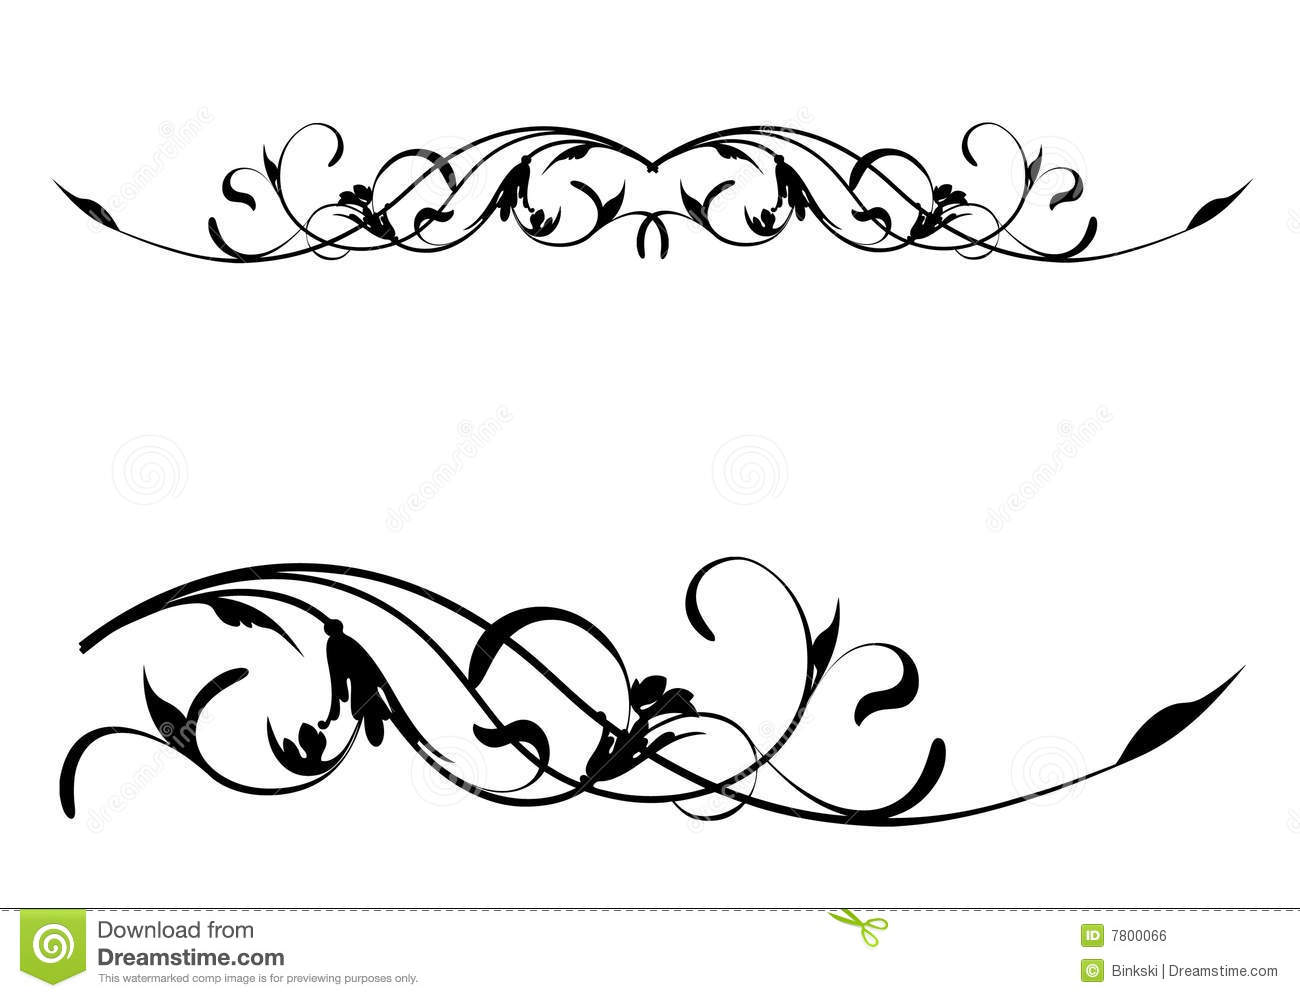 2128 Scroll free clipart.